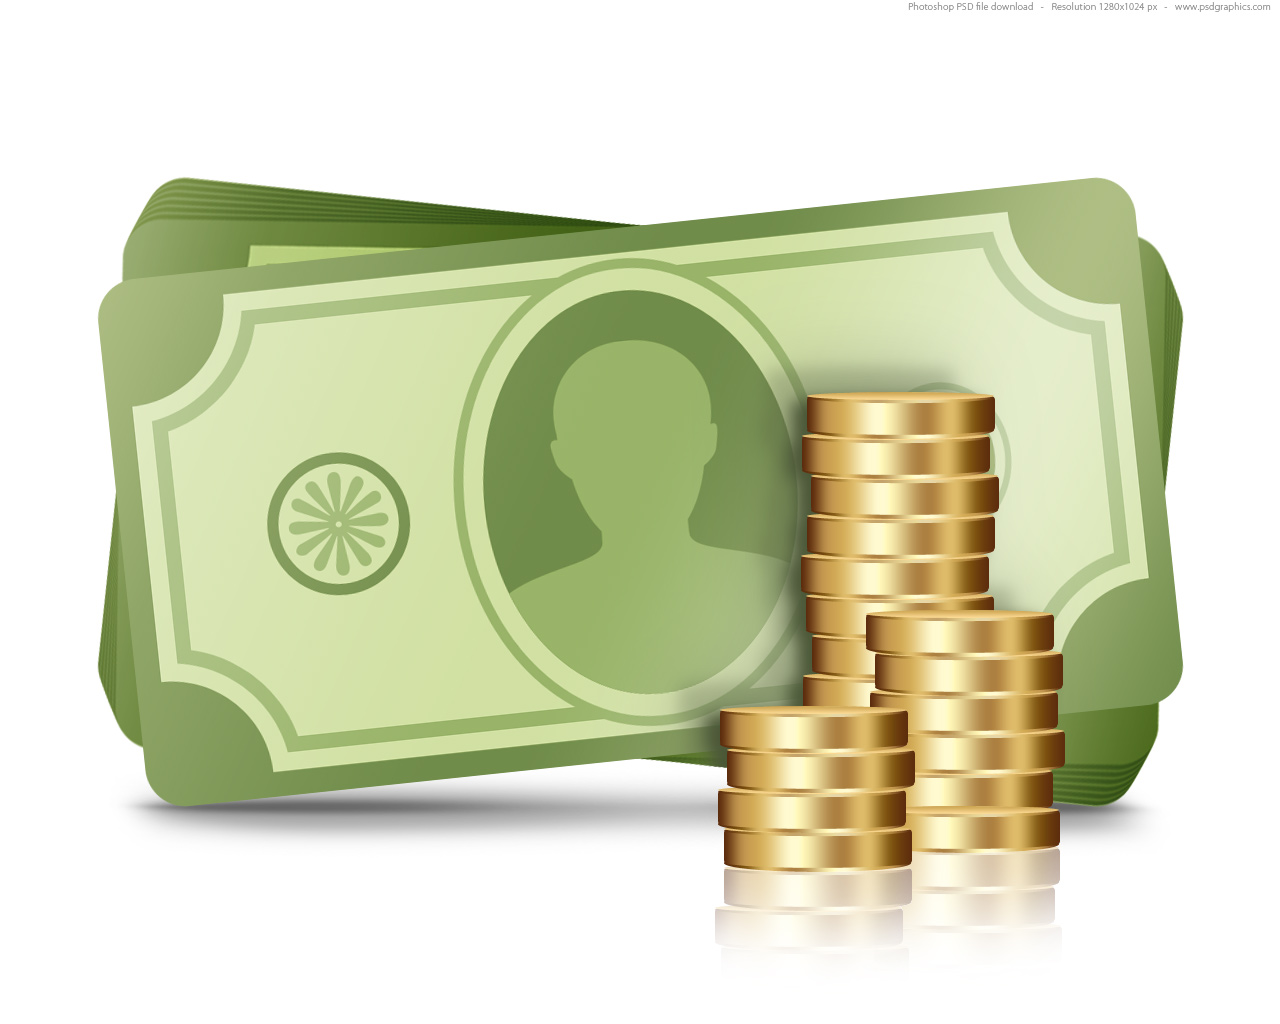 14 Money Sign Icon Images